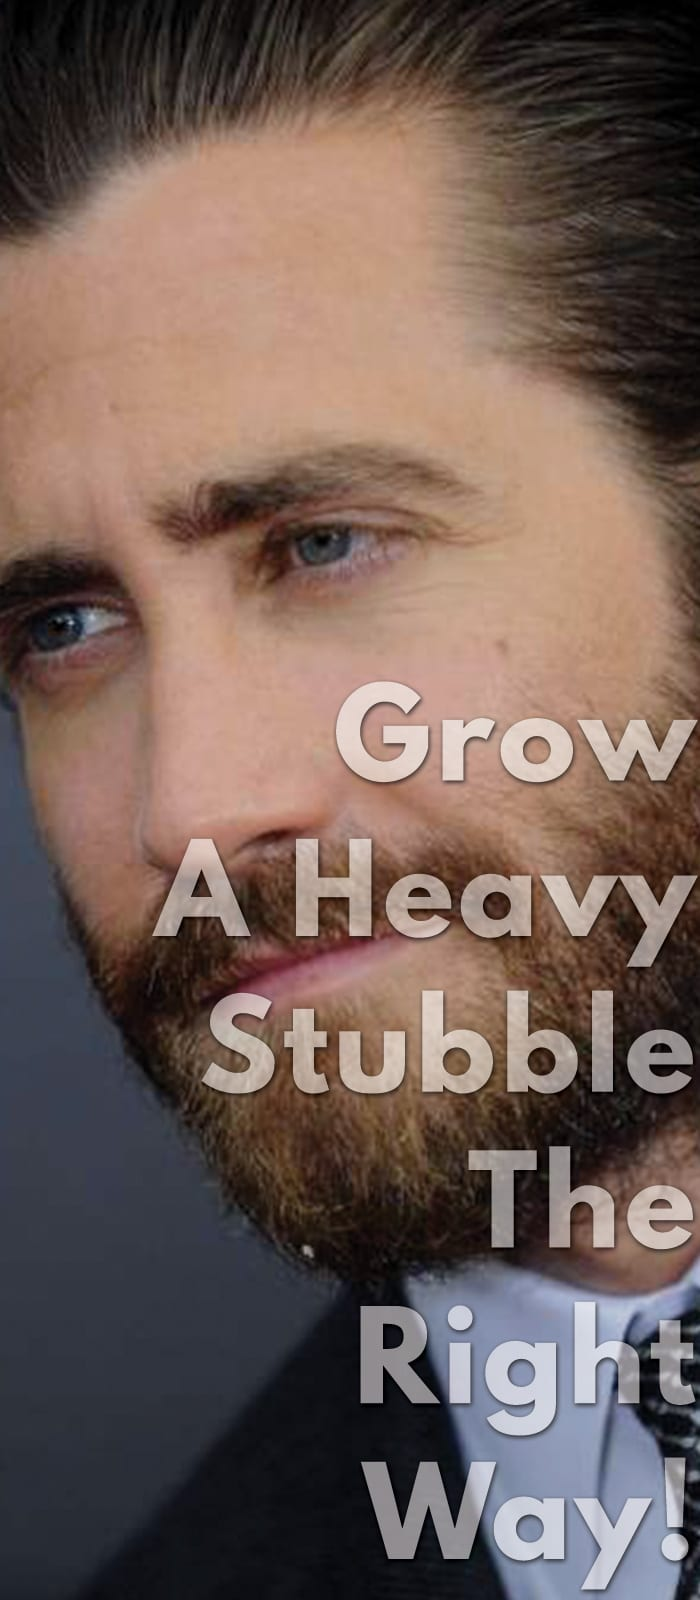 Know-It-All-–-Grow-A-Heavy-Stubble-The-Right-Way!.